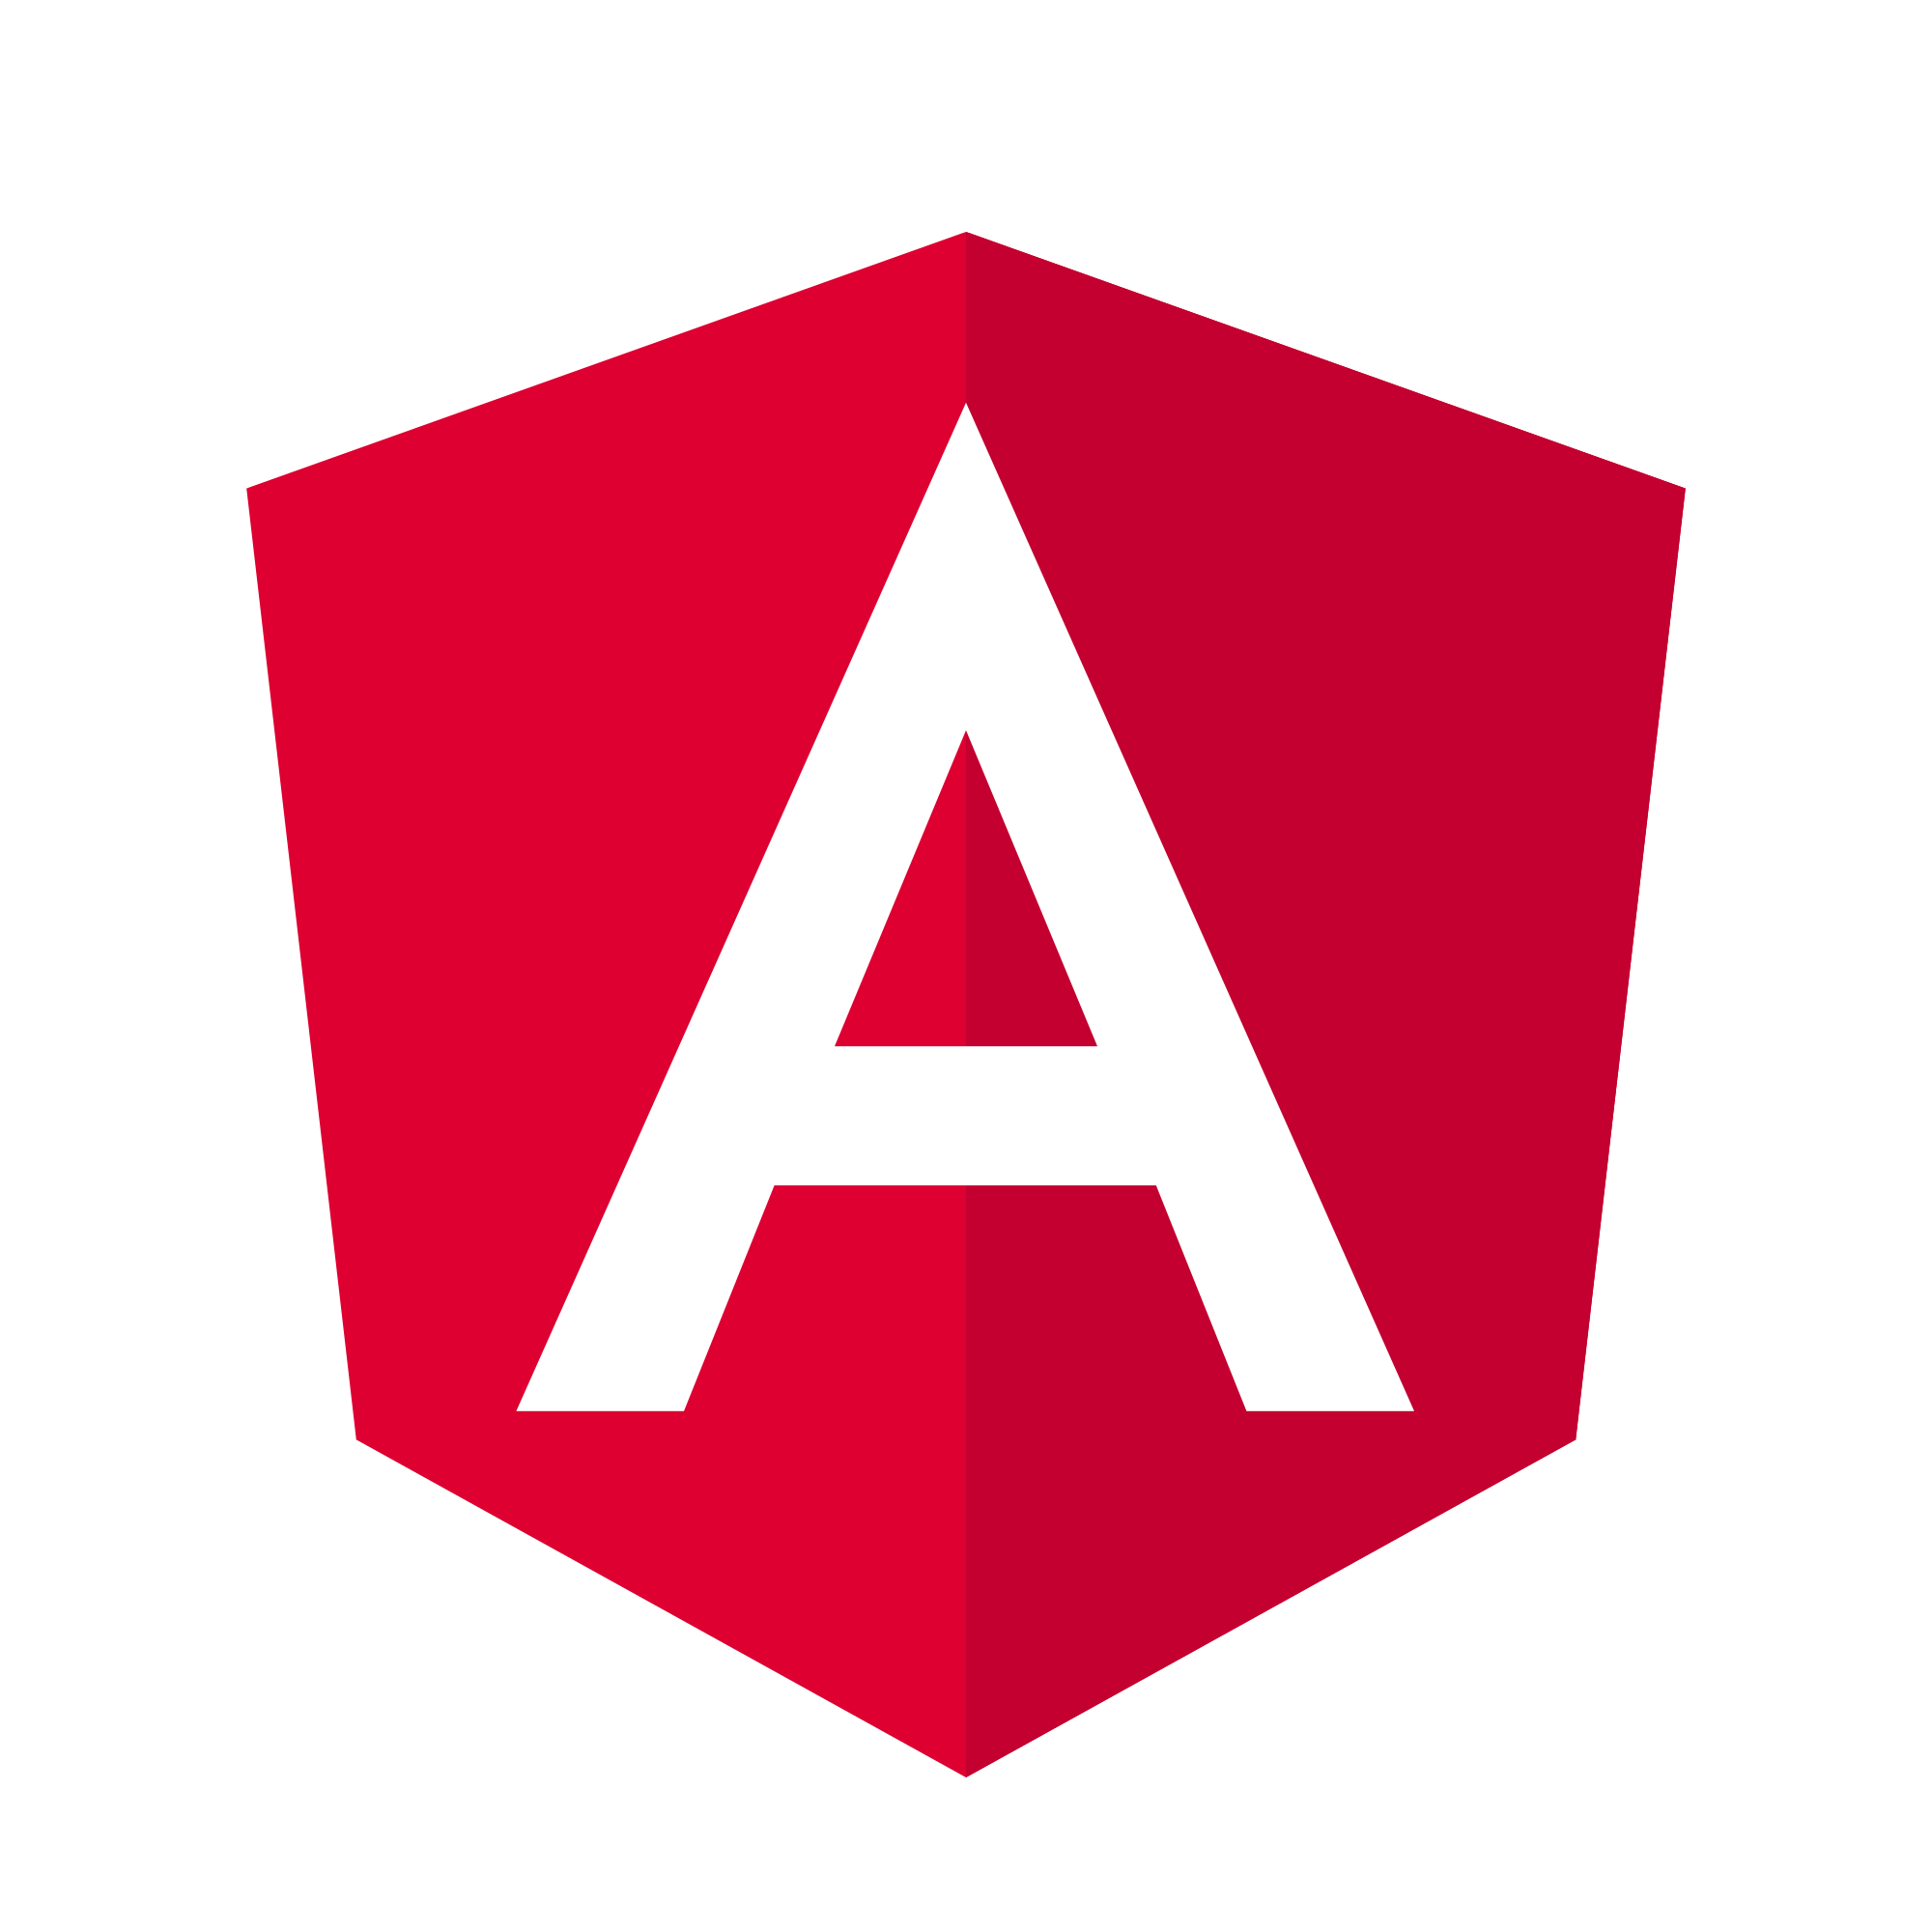 angular svg logo